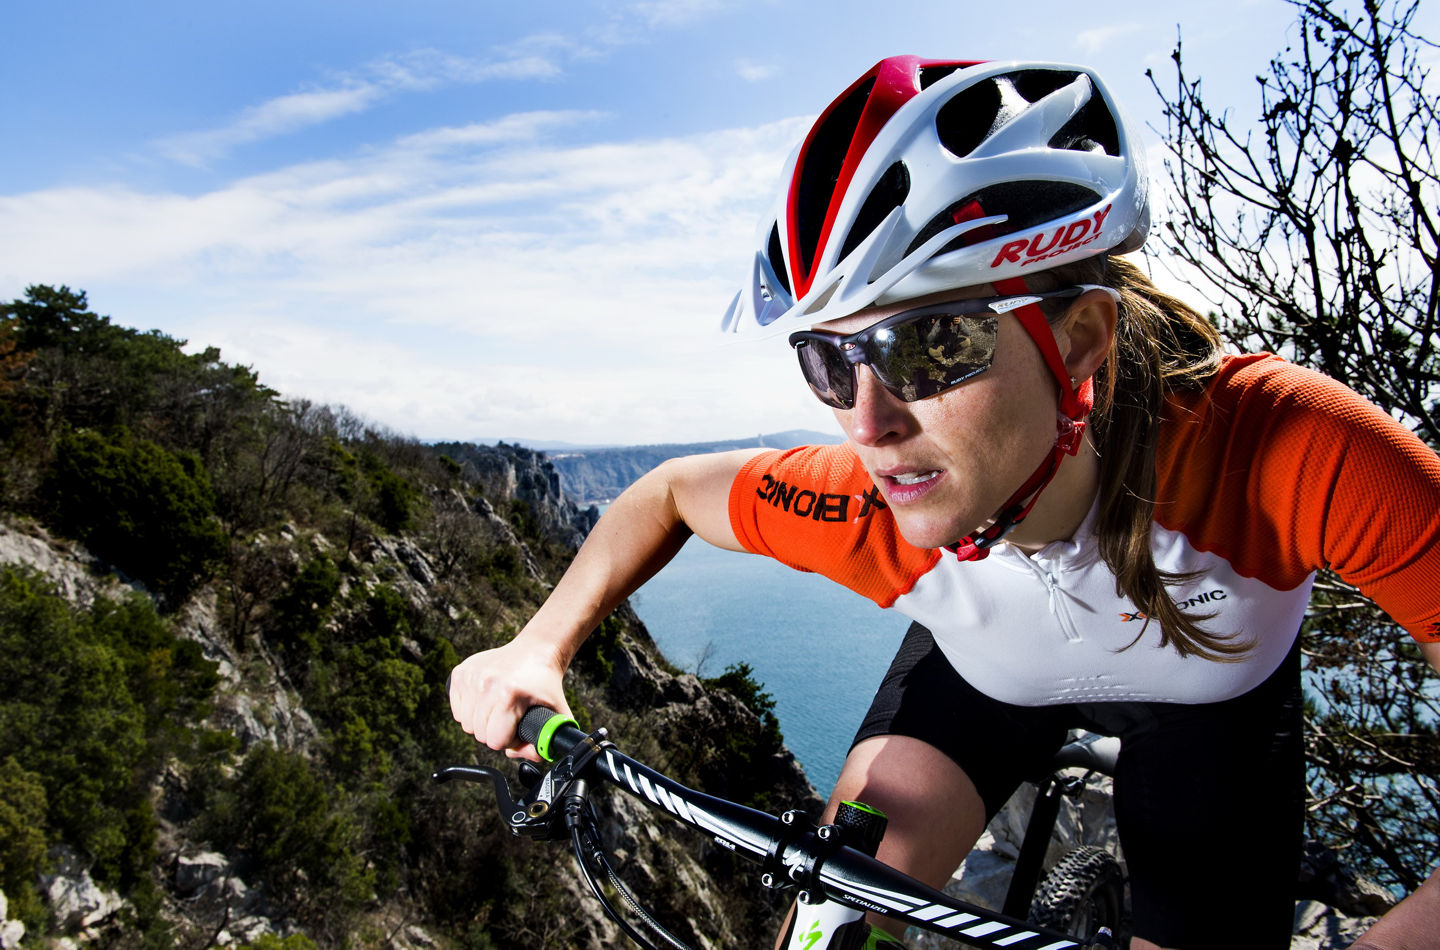 Rudy Project Forrás: rudyproject.hu